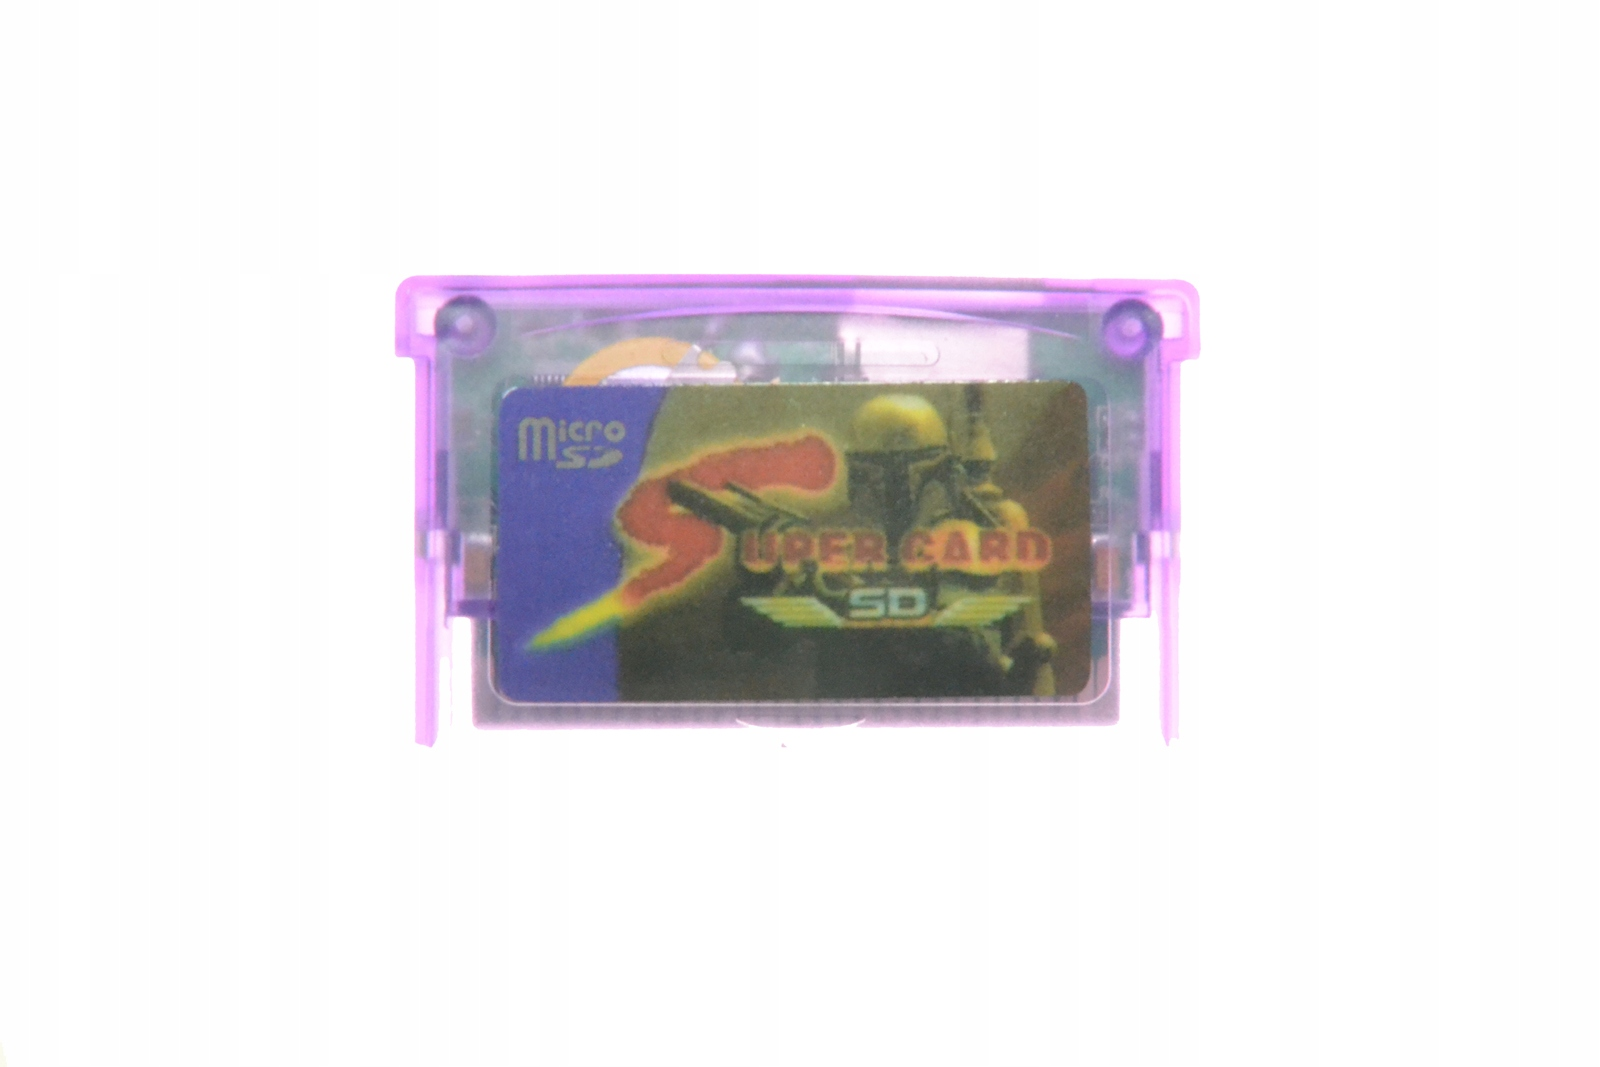 Item THE PROGRAMMER MICRO SD SUPERCARD GBA